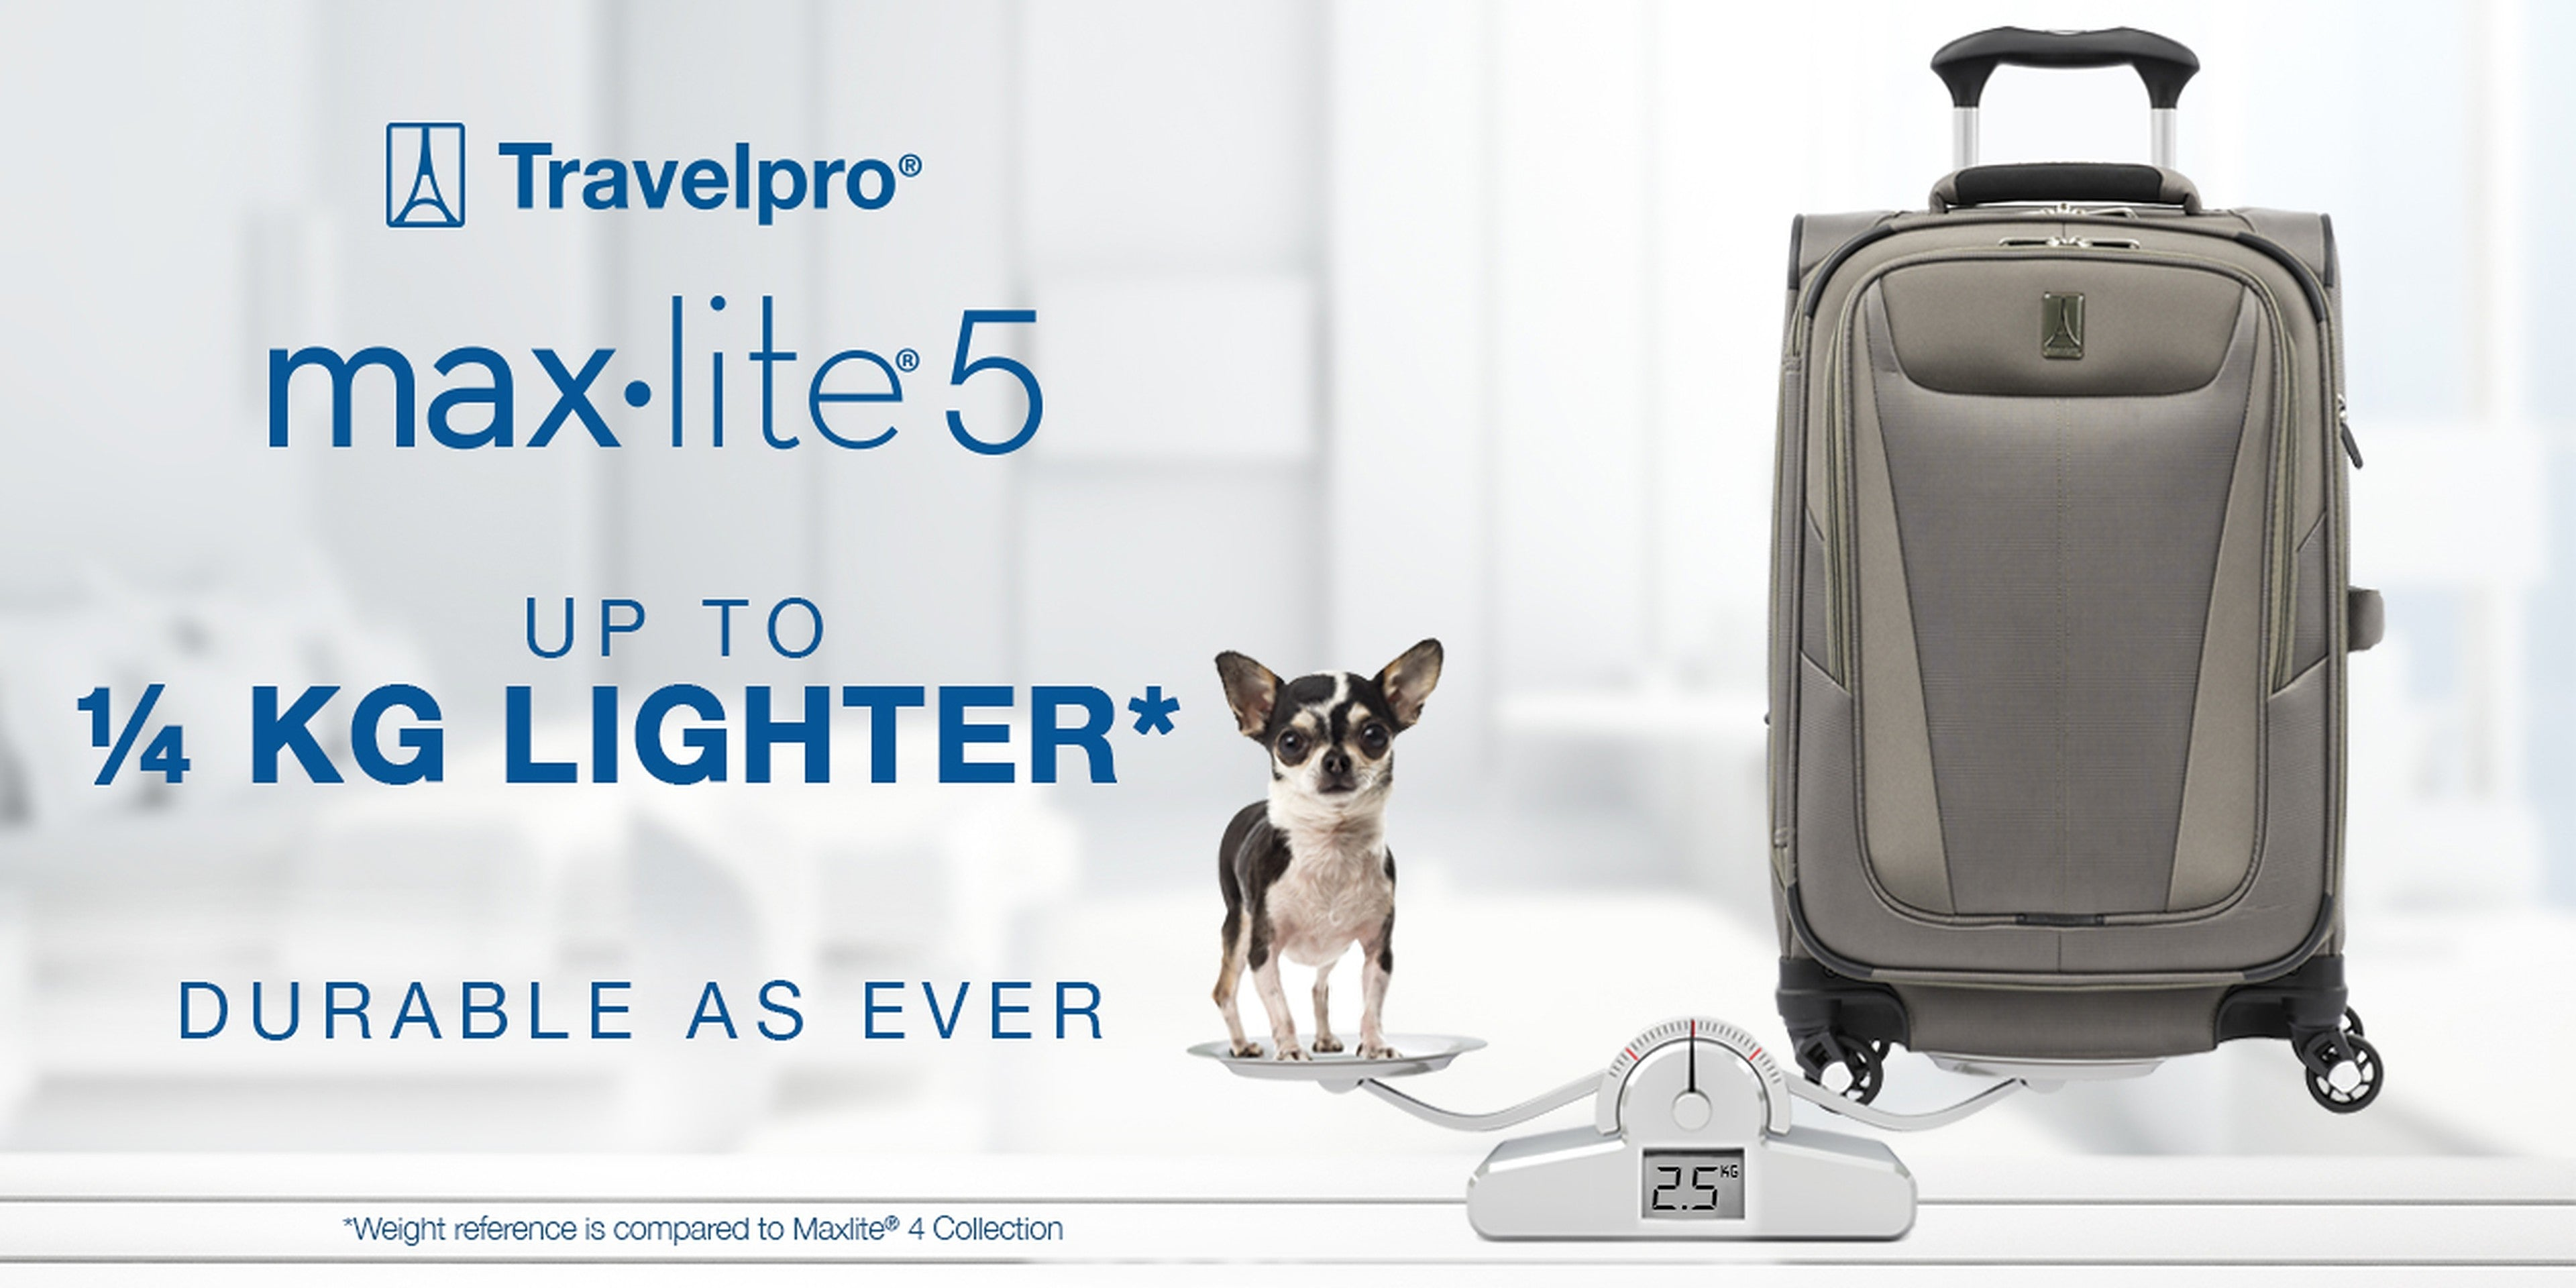 LUGGAGE THE WEIGHT OF YOUR CHIHUAHUA: TRAVELPRO MAXLITE® 5 COLLECTION